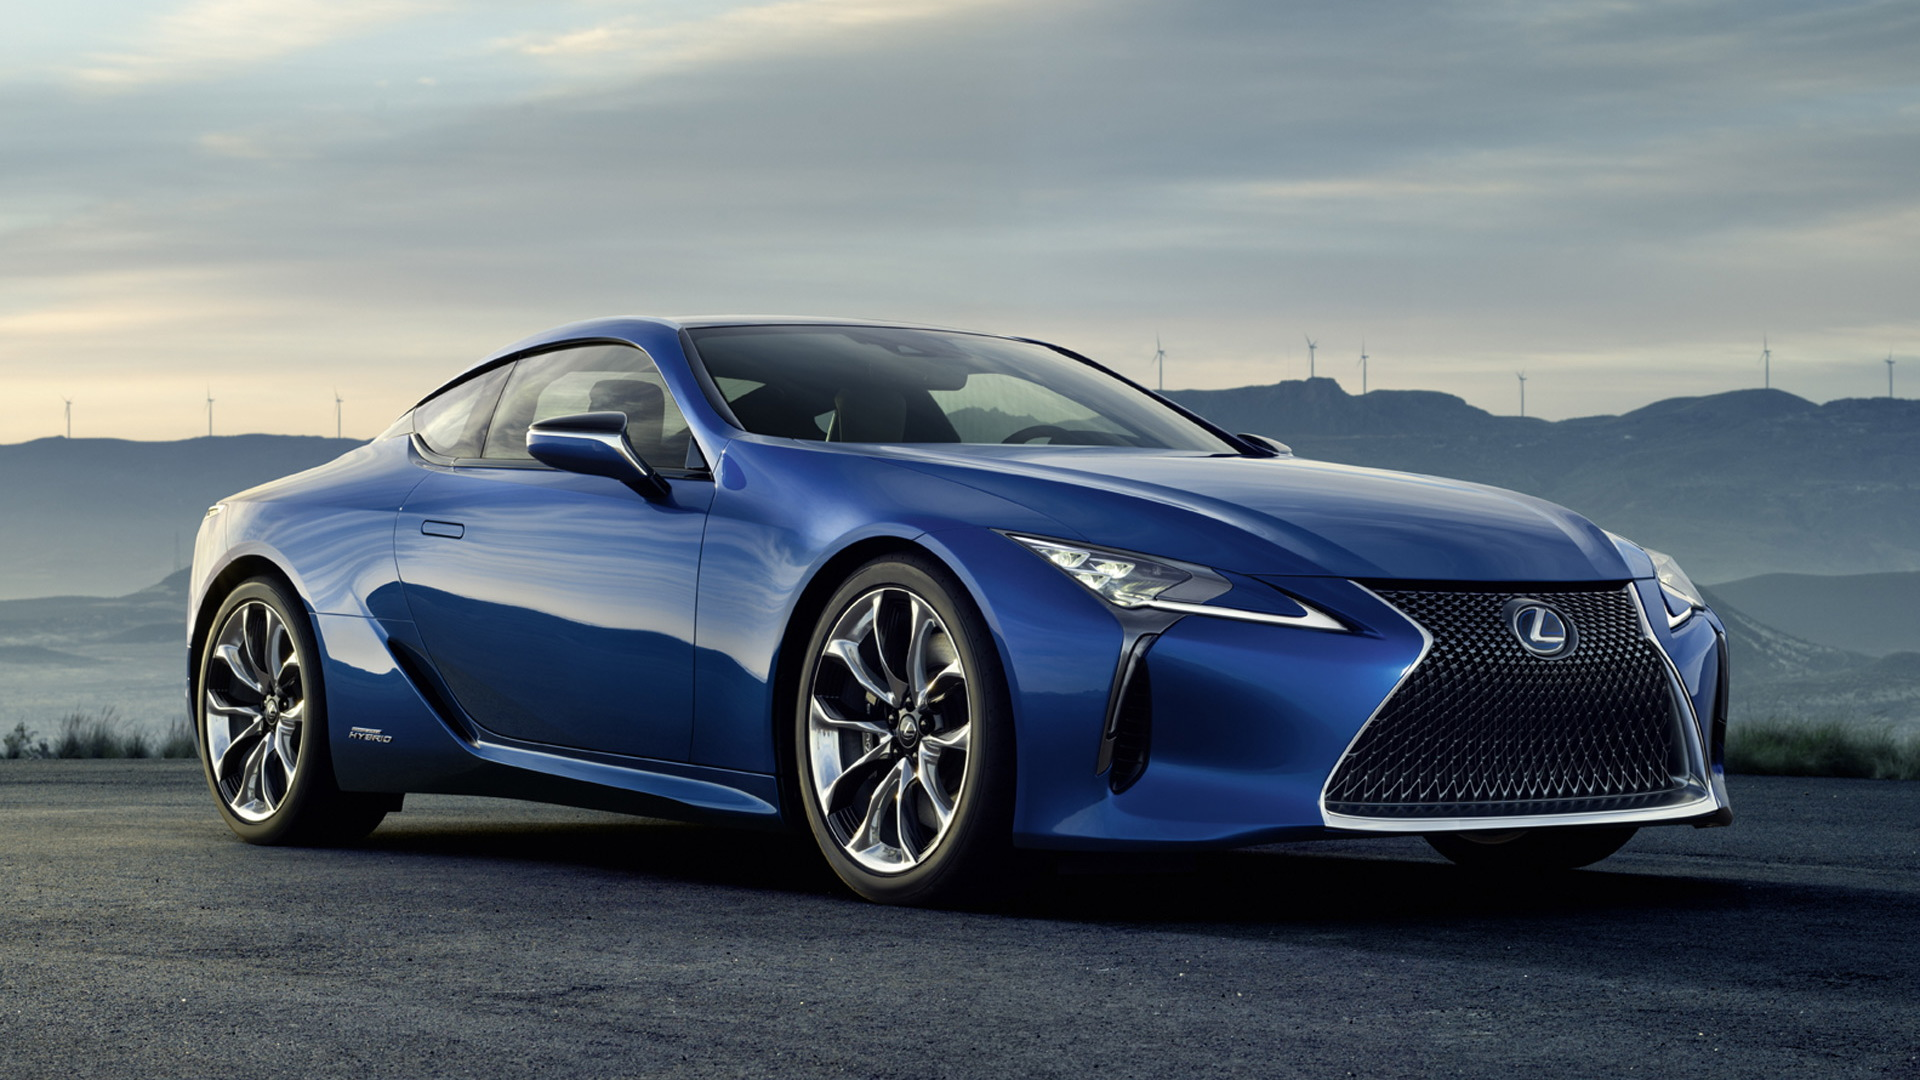 2018 Lexus LC 500h: Geneva Debut For Hybrid Performance Coupe